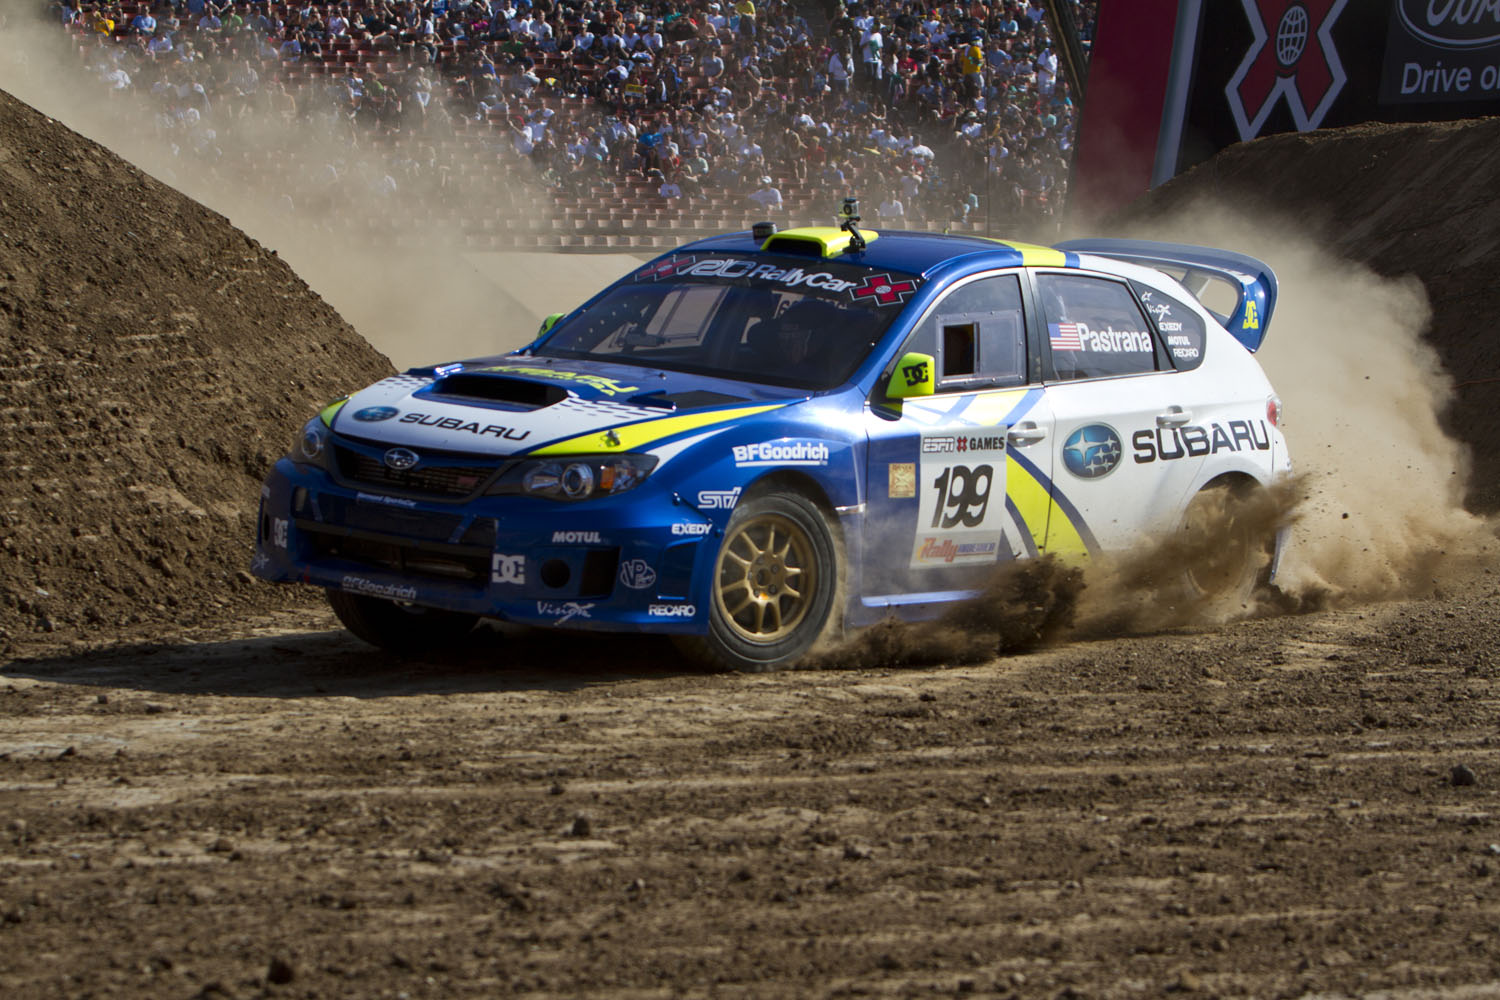 Travis Pastrana competes during the Rally Car event at X Games 16 on July 31, 2010 in Los Angeles, California.